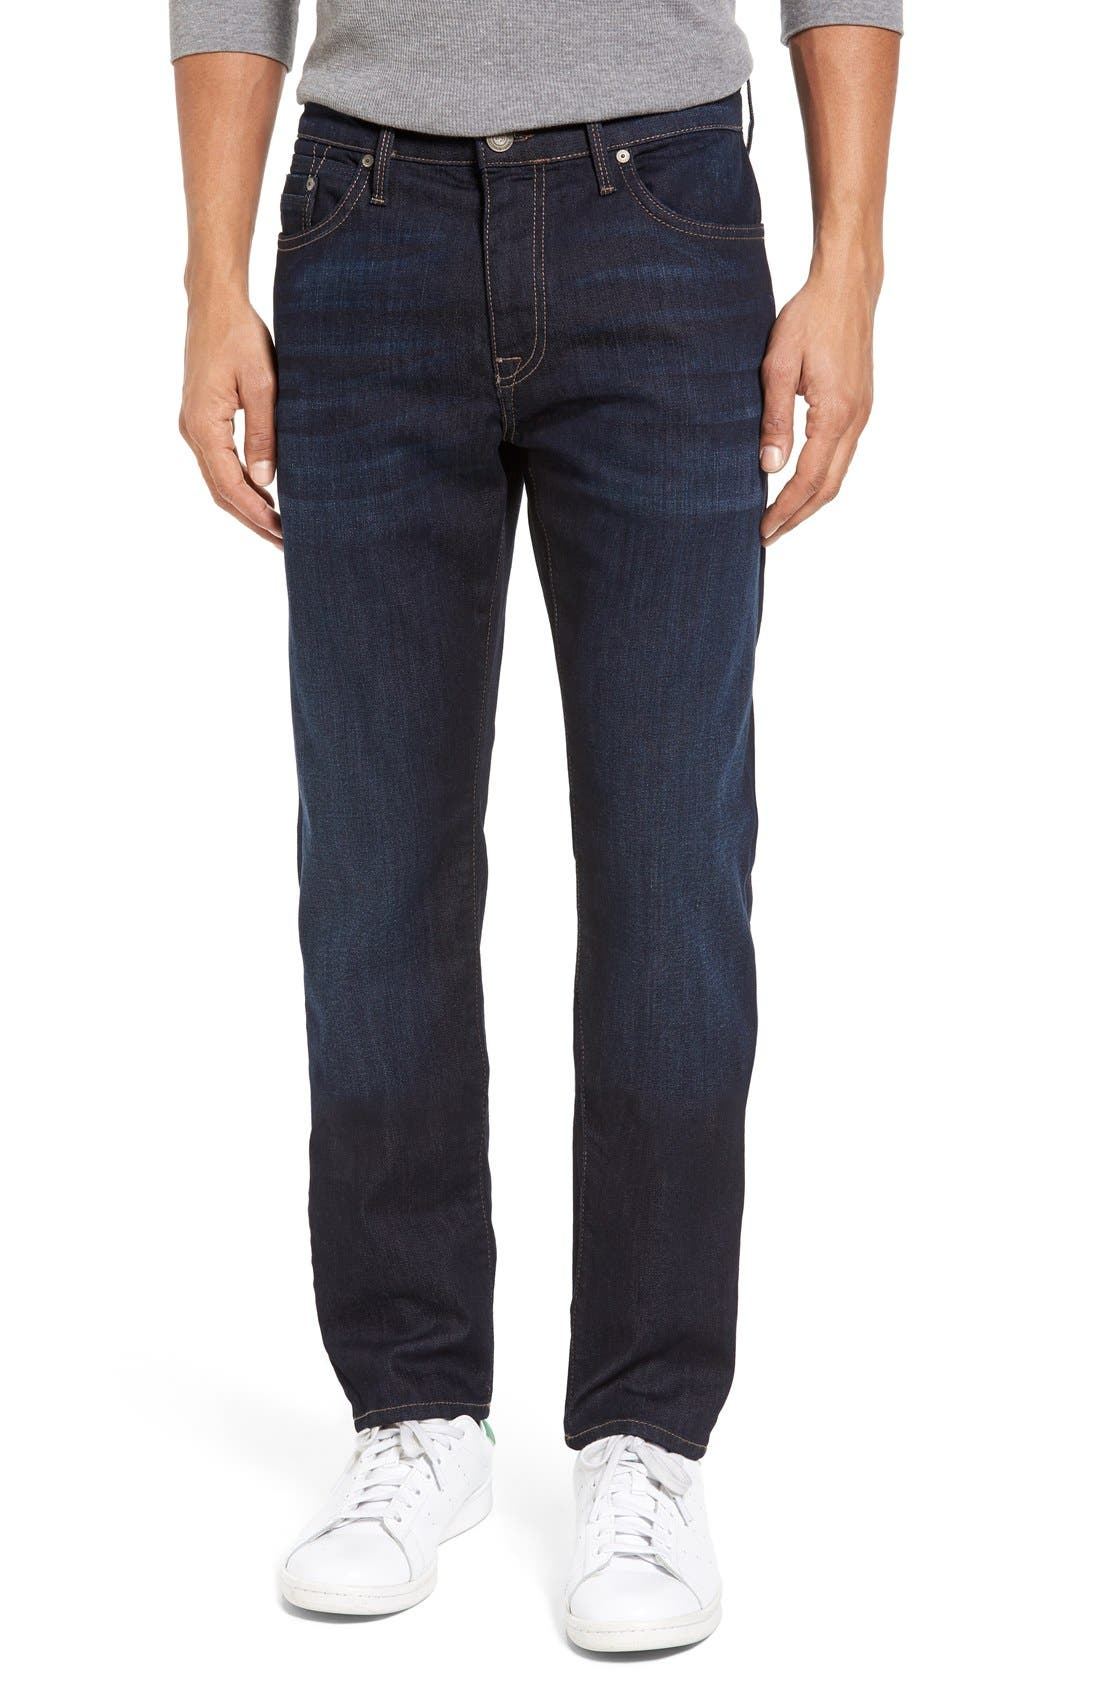 Marcus Slim Straight Leg Jeans,                         Main,                         color, Rinse Brushed Williamsburg